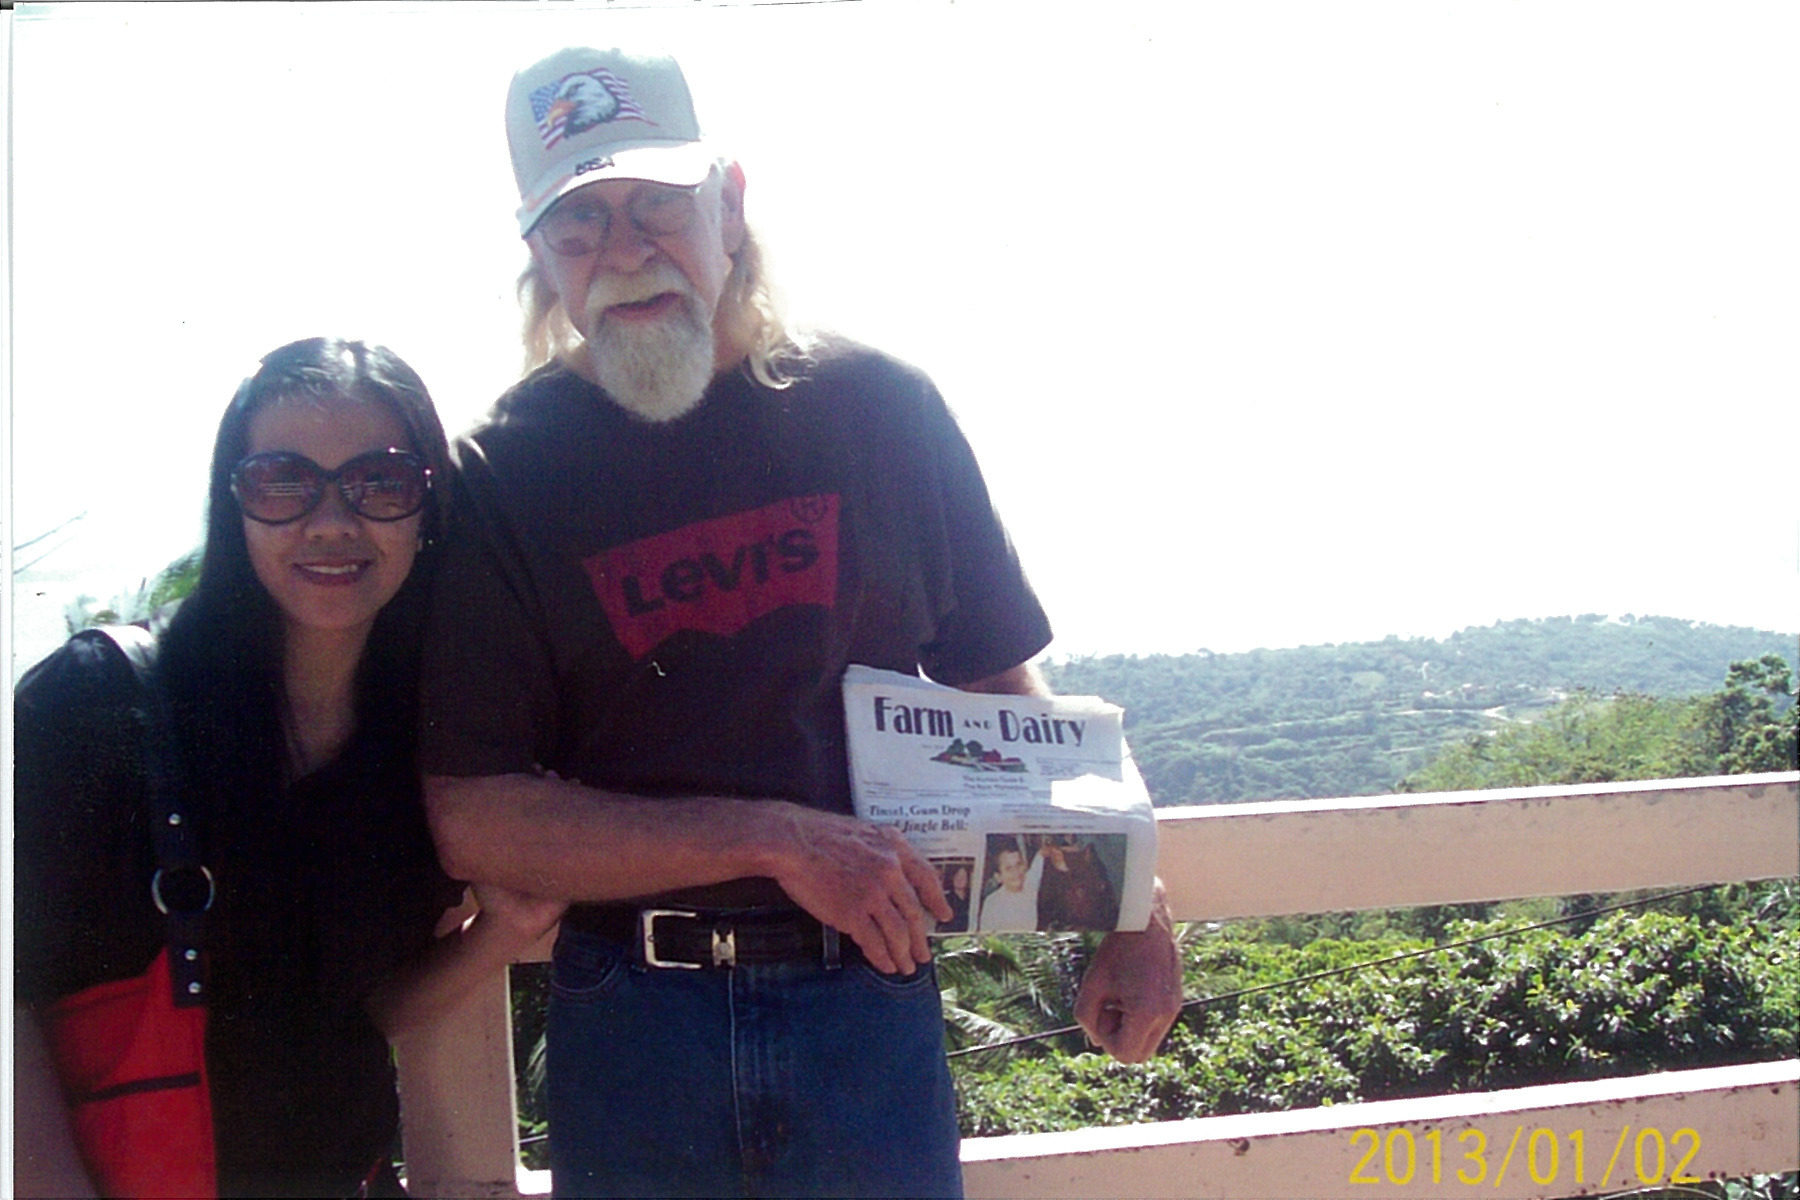 Randy Stoker, right, of Atlantic, Pa., sits with his friend Joy and the Farm and Dairy at Taal Volcano, at Tagaytay in the Phillipines. Randy visited the Phillipines from November until February.